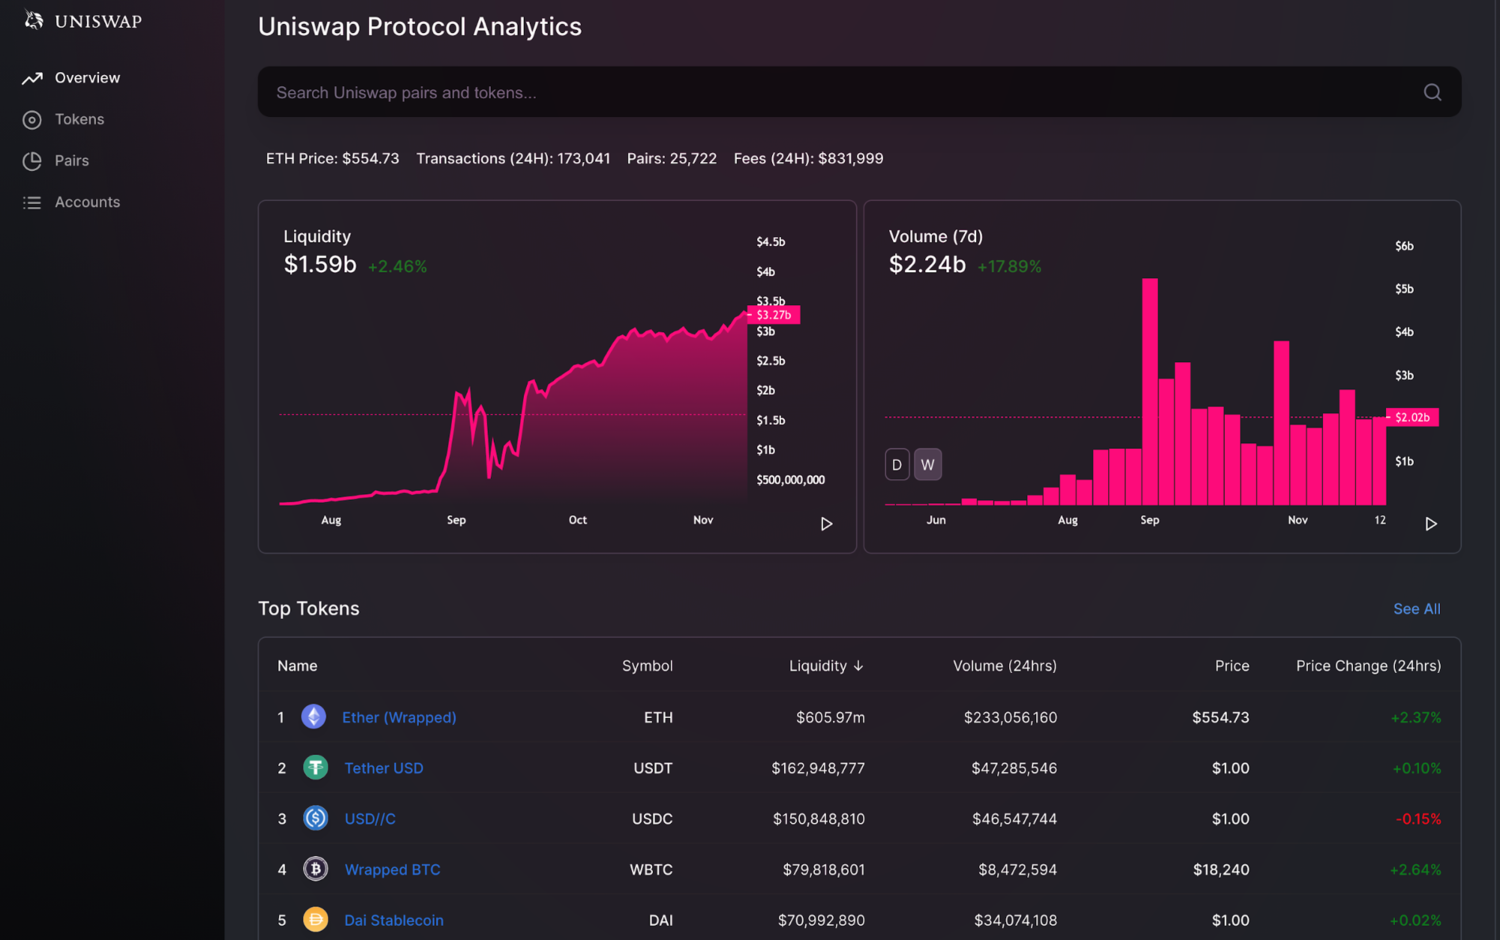 Uniswap is the highest volume AMM and a leader in the Ethereum DeFi revolution. Total liquidity and volume are both measured in Billions of dollars.